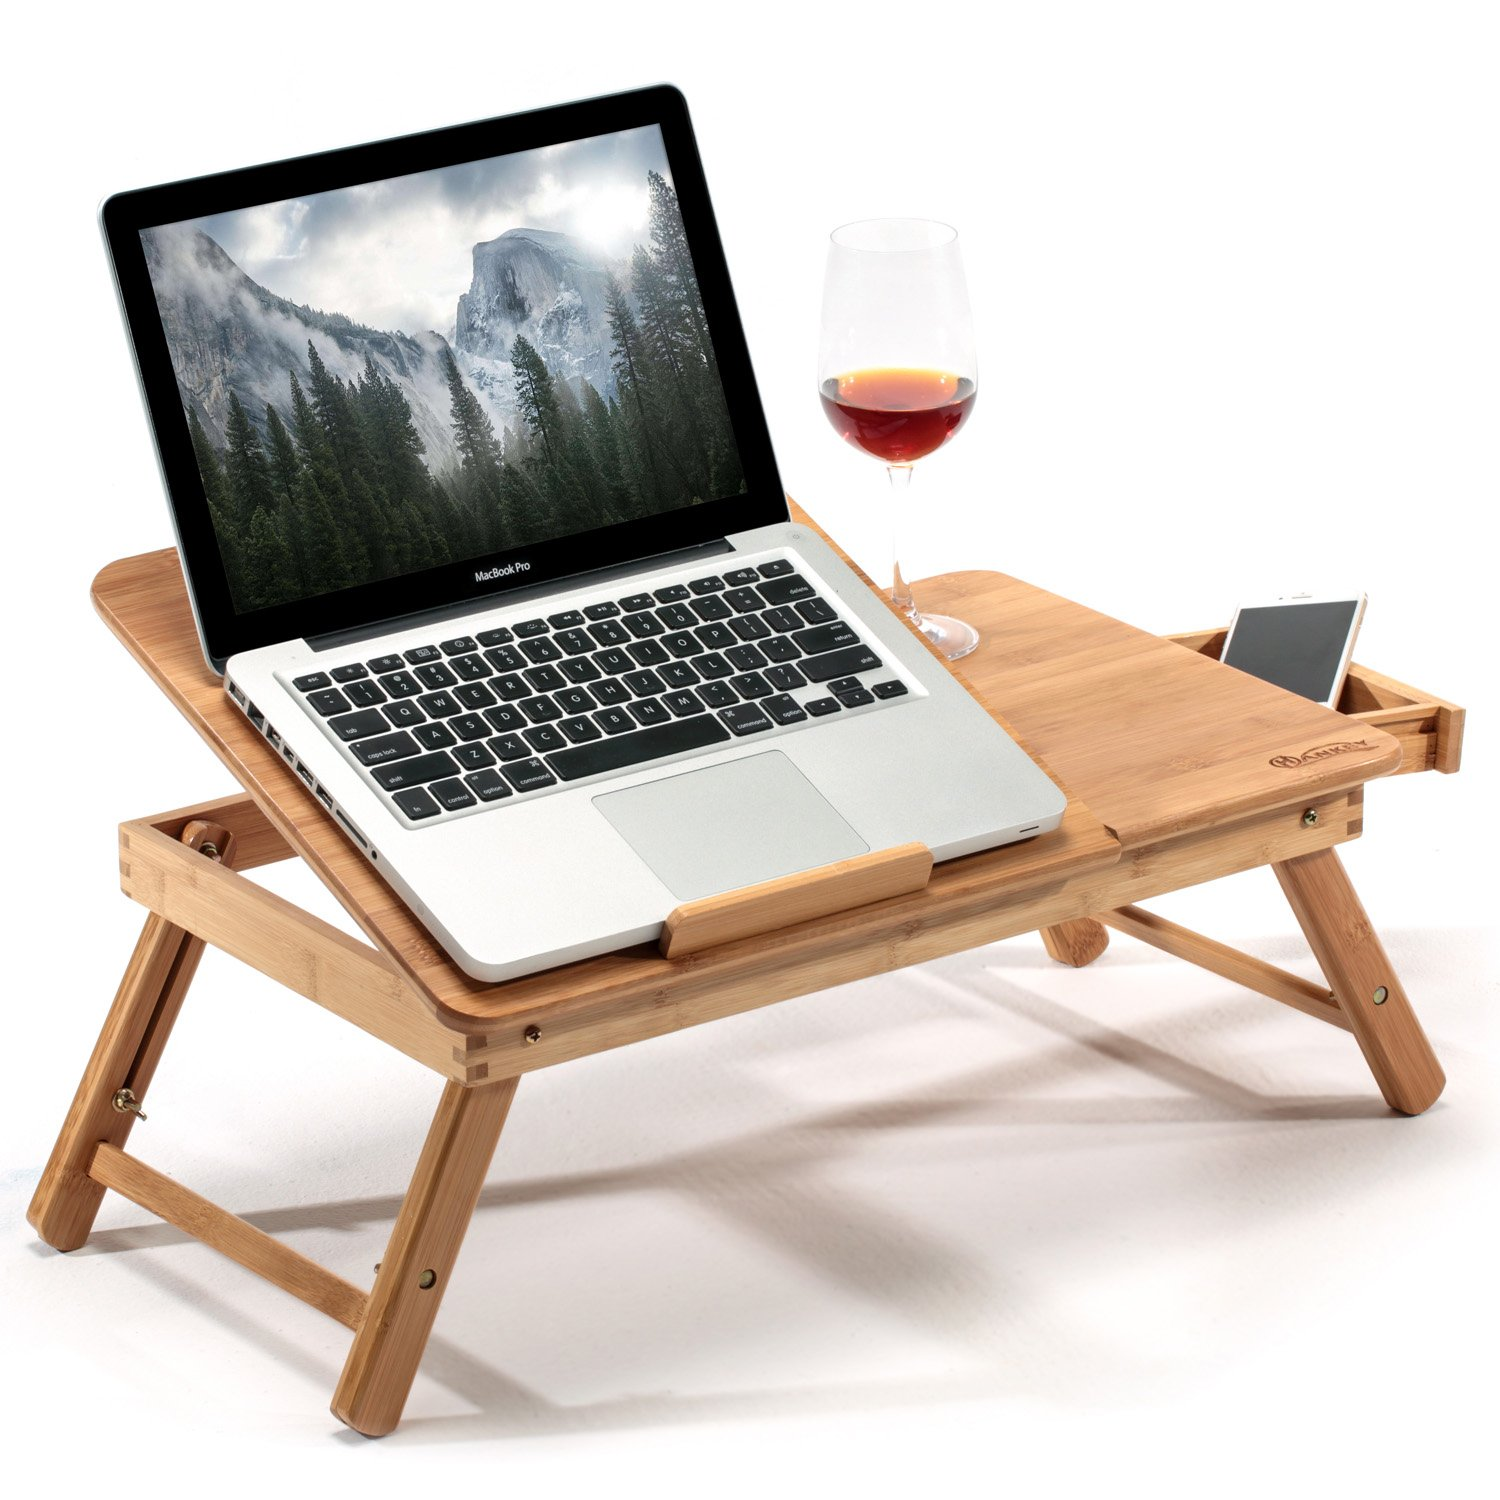 HANKEY Bamboo Large Foldable Laptop Notebook Stand Desk with Height Adjustable Legs Drawer Cup Holder,Bed Table Serving Tray for Eating Breakfast, Reading Book, Watching Movie on iPad